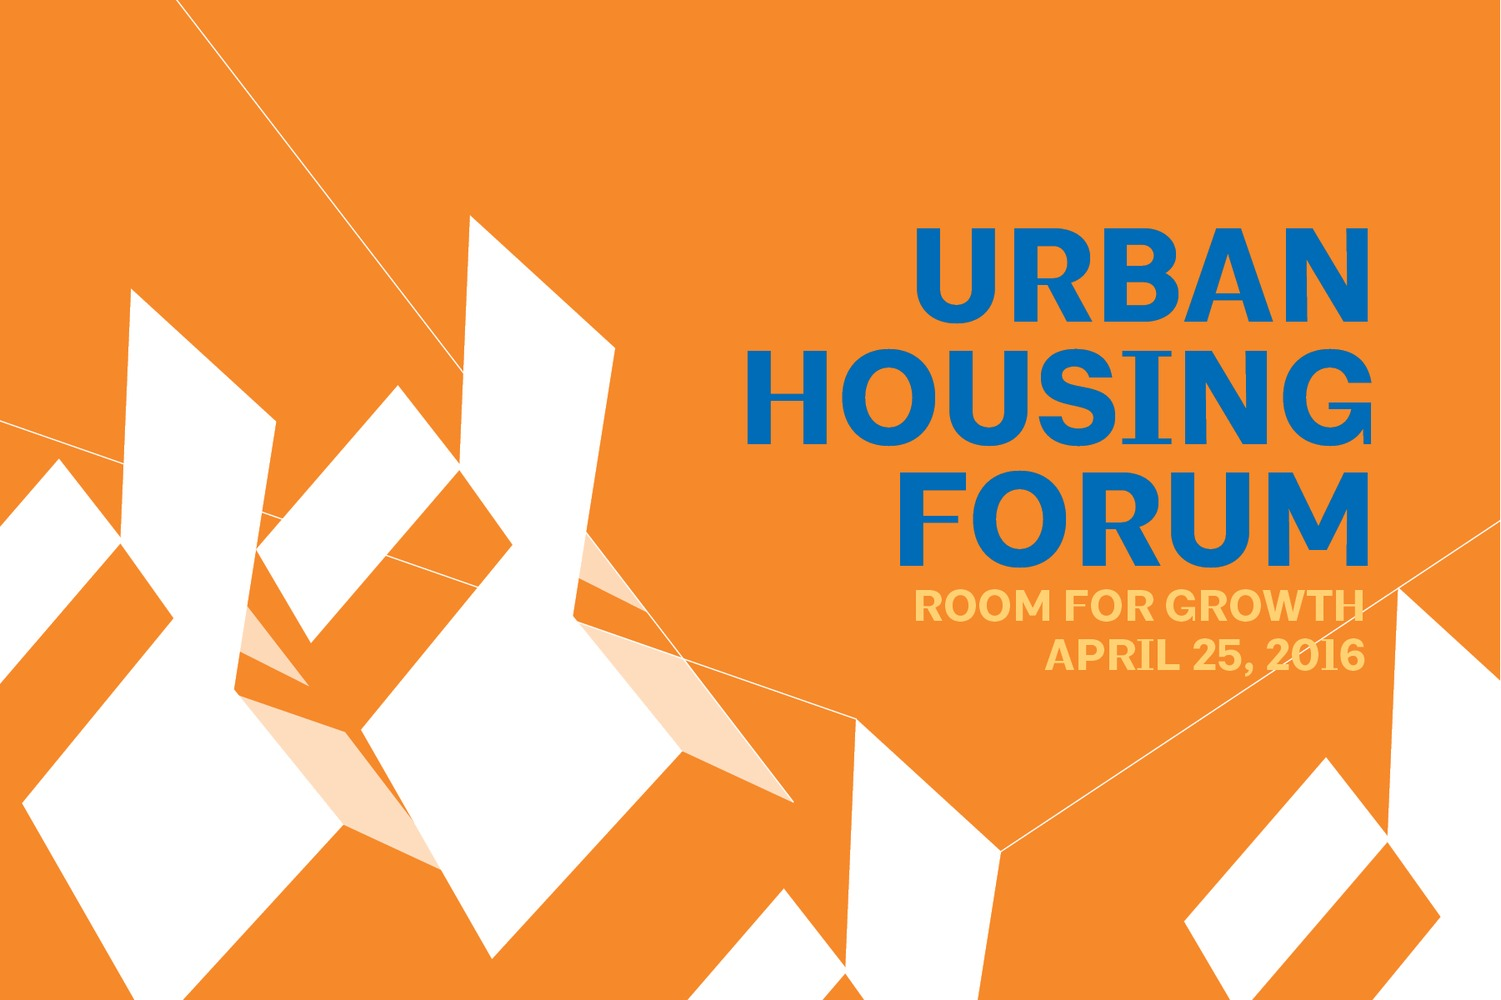 urban housing forum room for growth2016 urban housing forum graphic by leah vendl